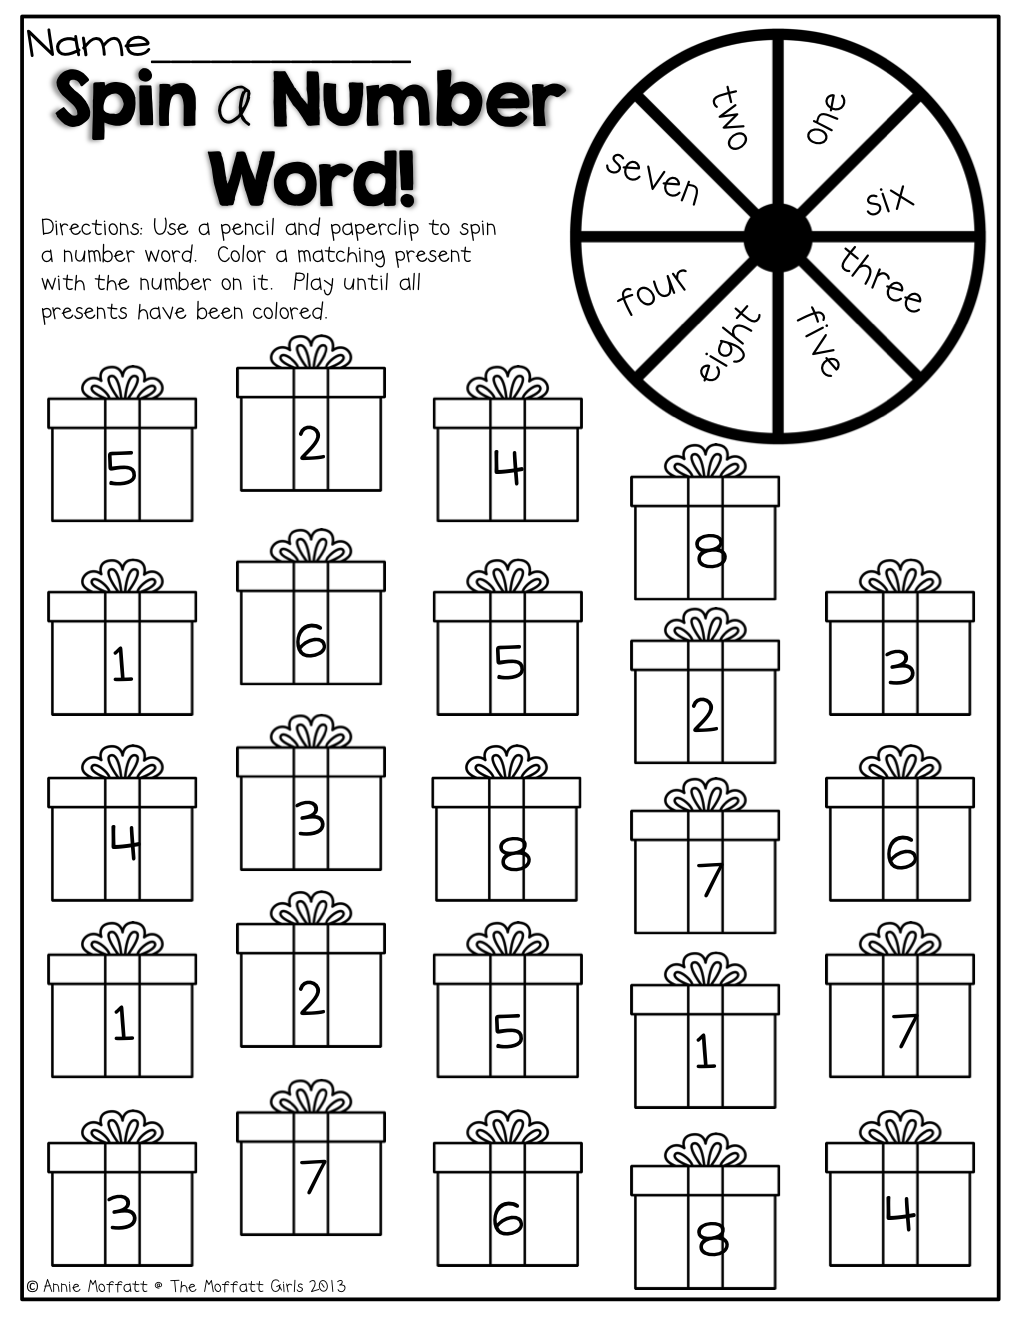 Spin A Number Word And Color A Present